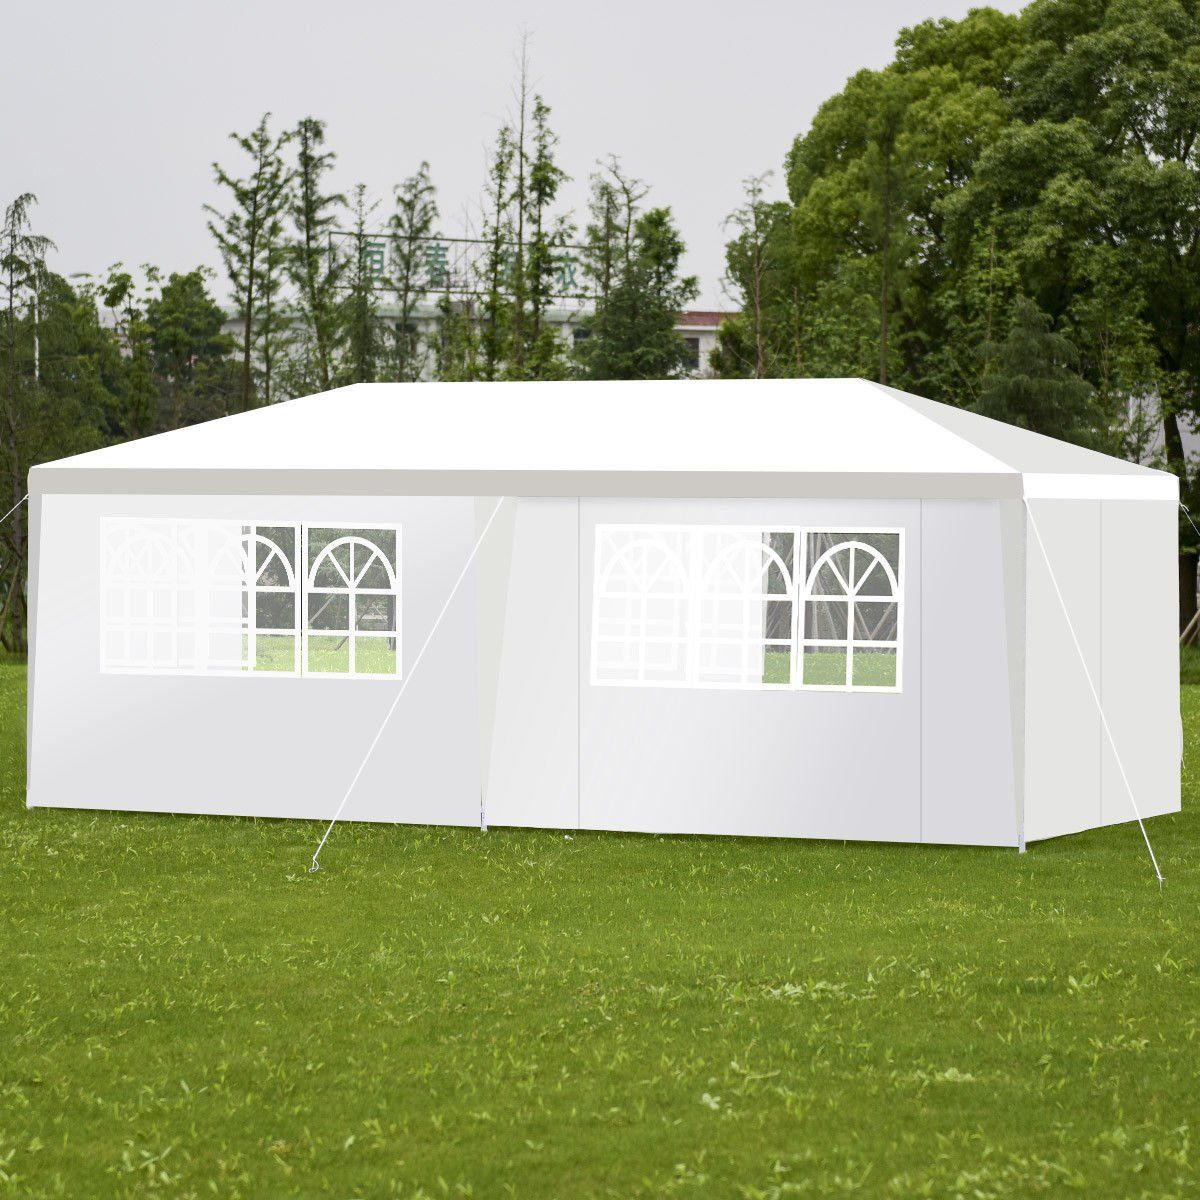 TANGKULA Outdoor 10x20 Canopy Tent Heavy Duty Wedding